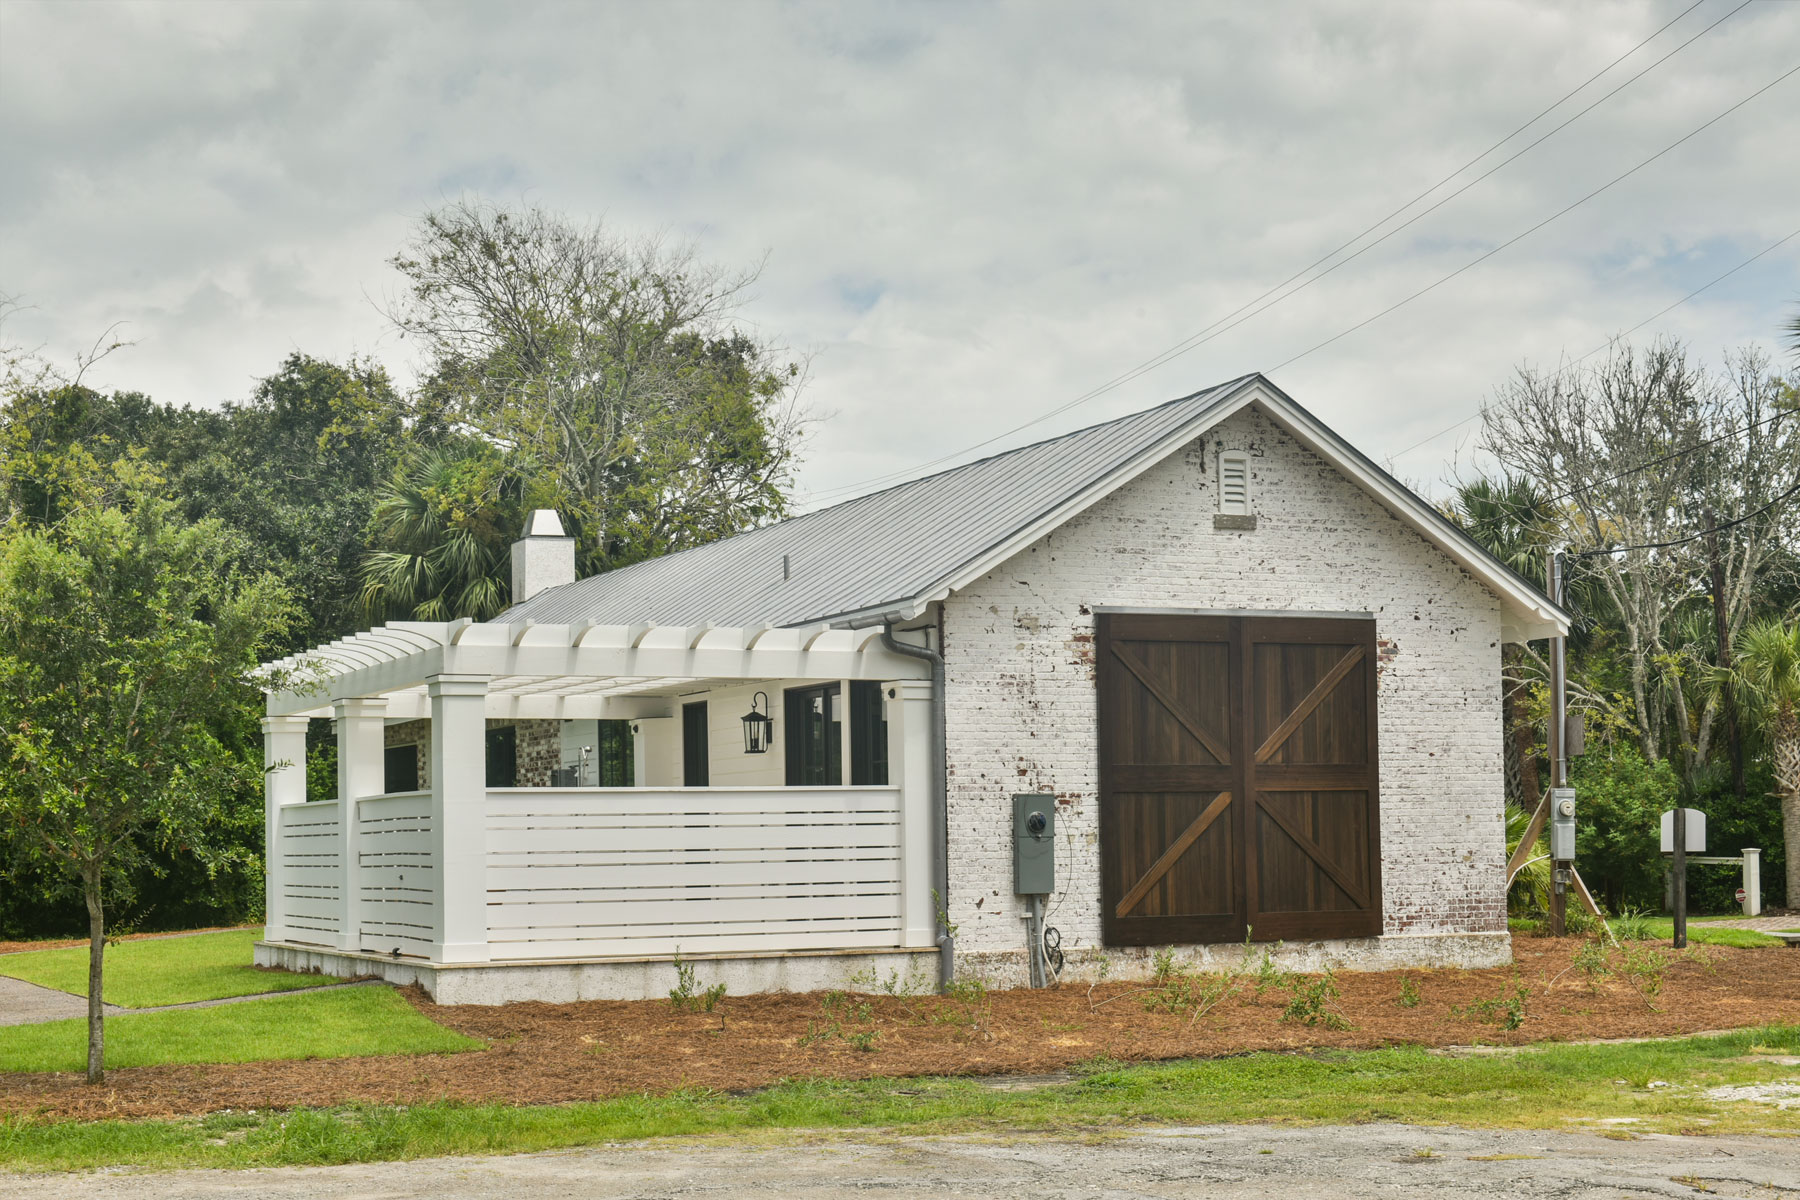 Side view of building where old garage door once was